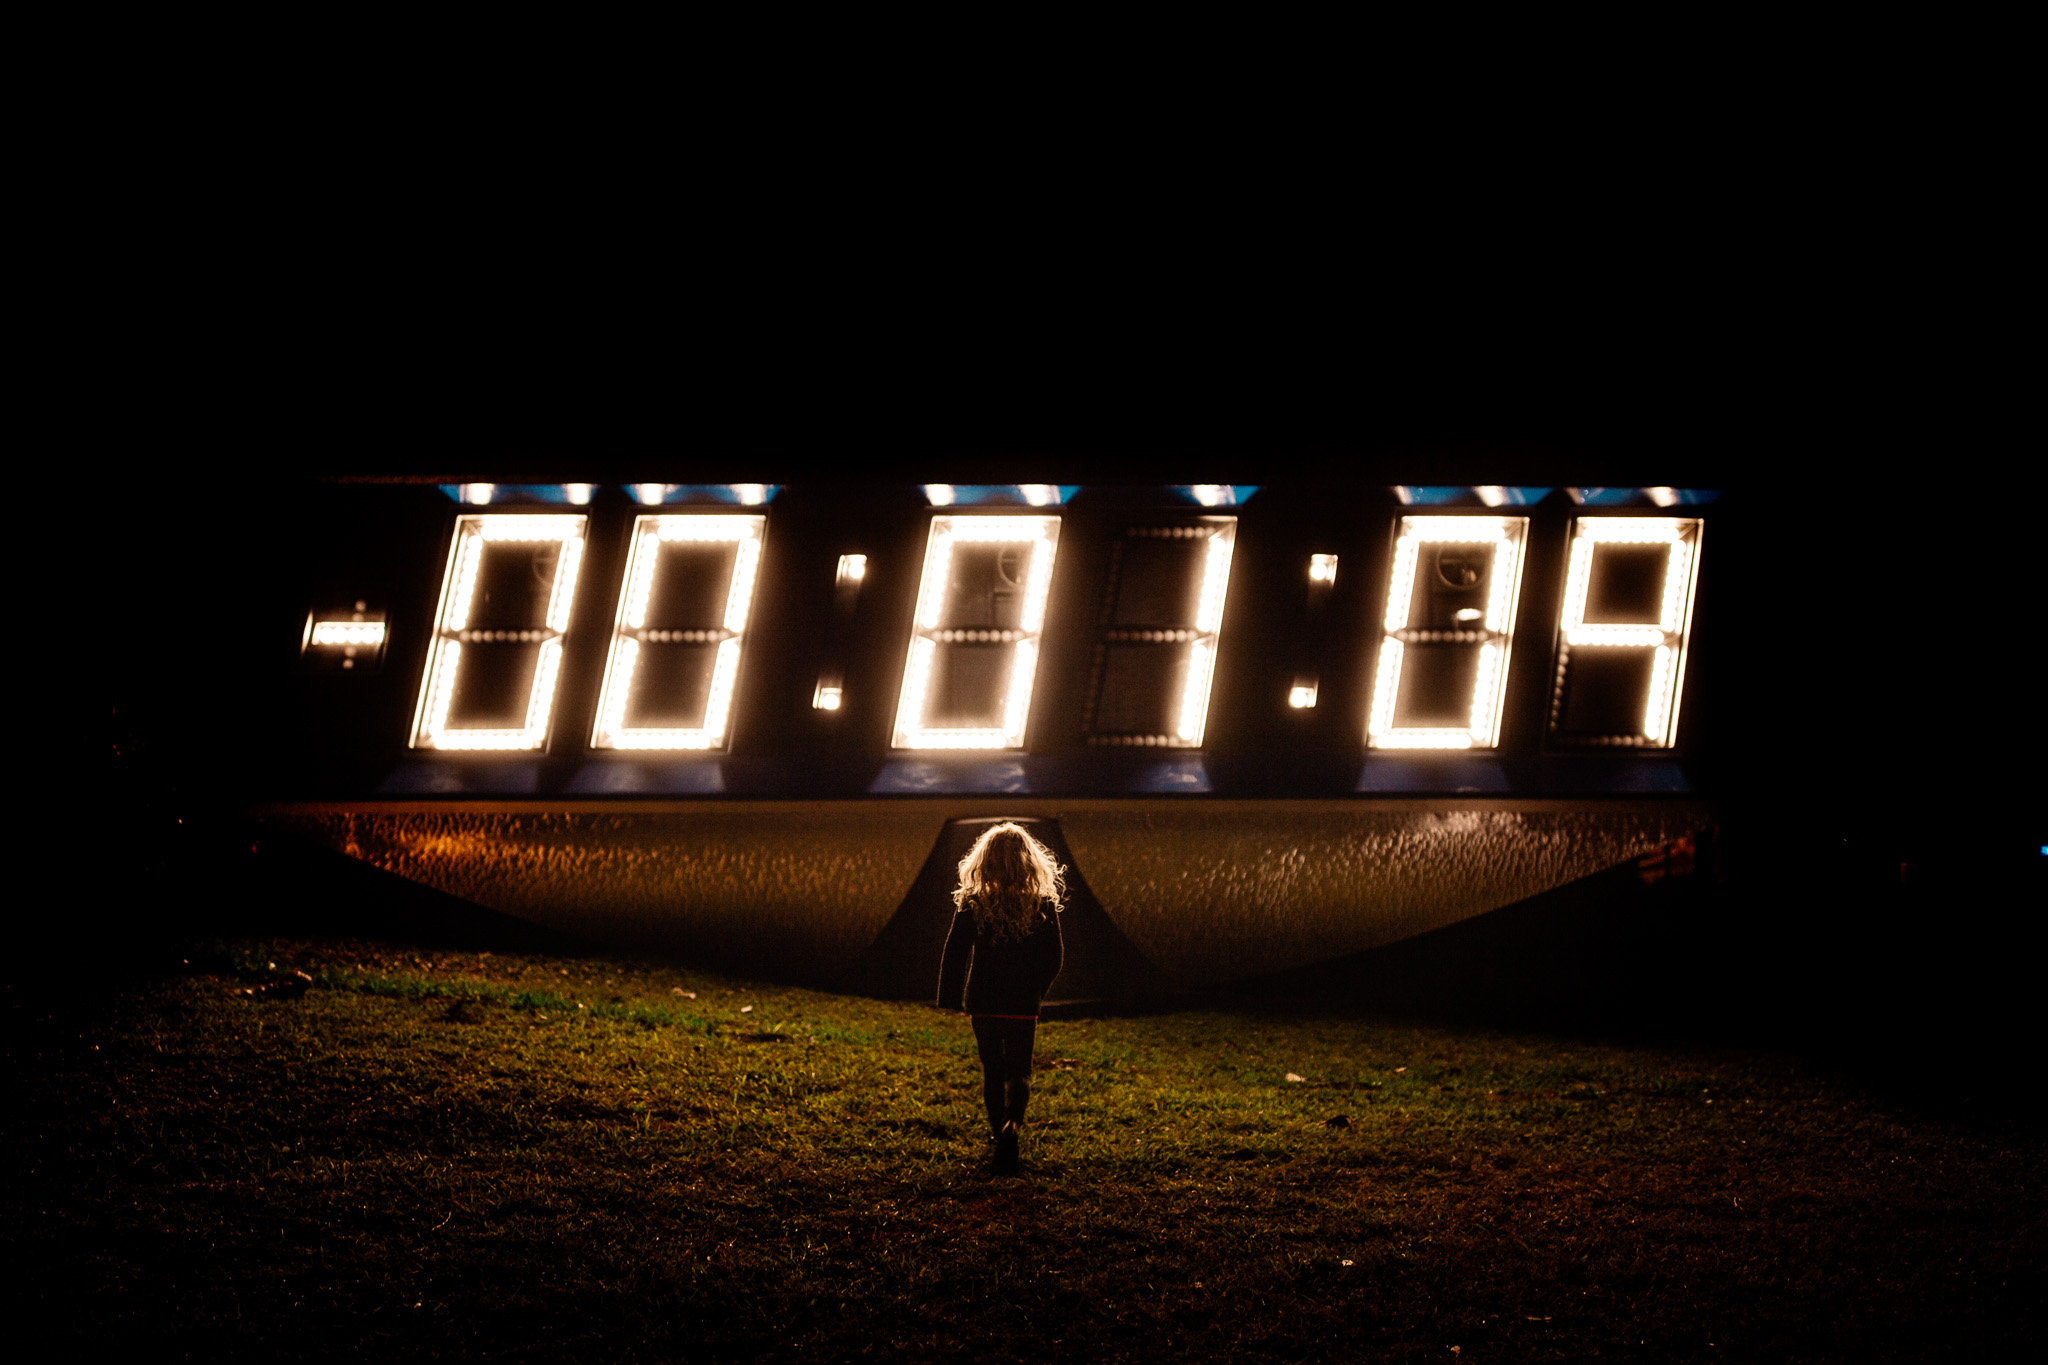 count down clock